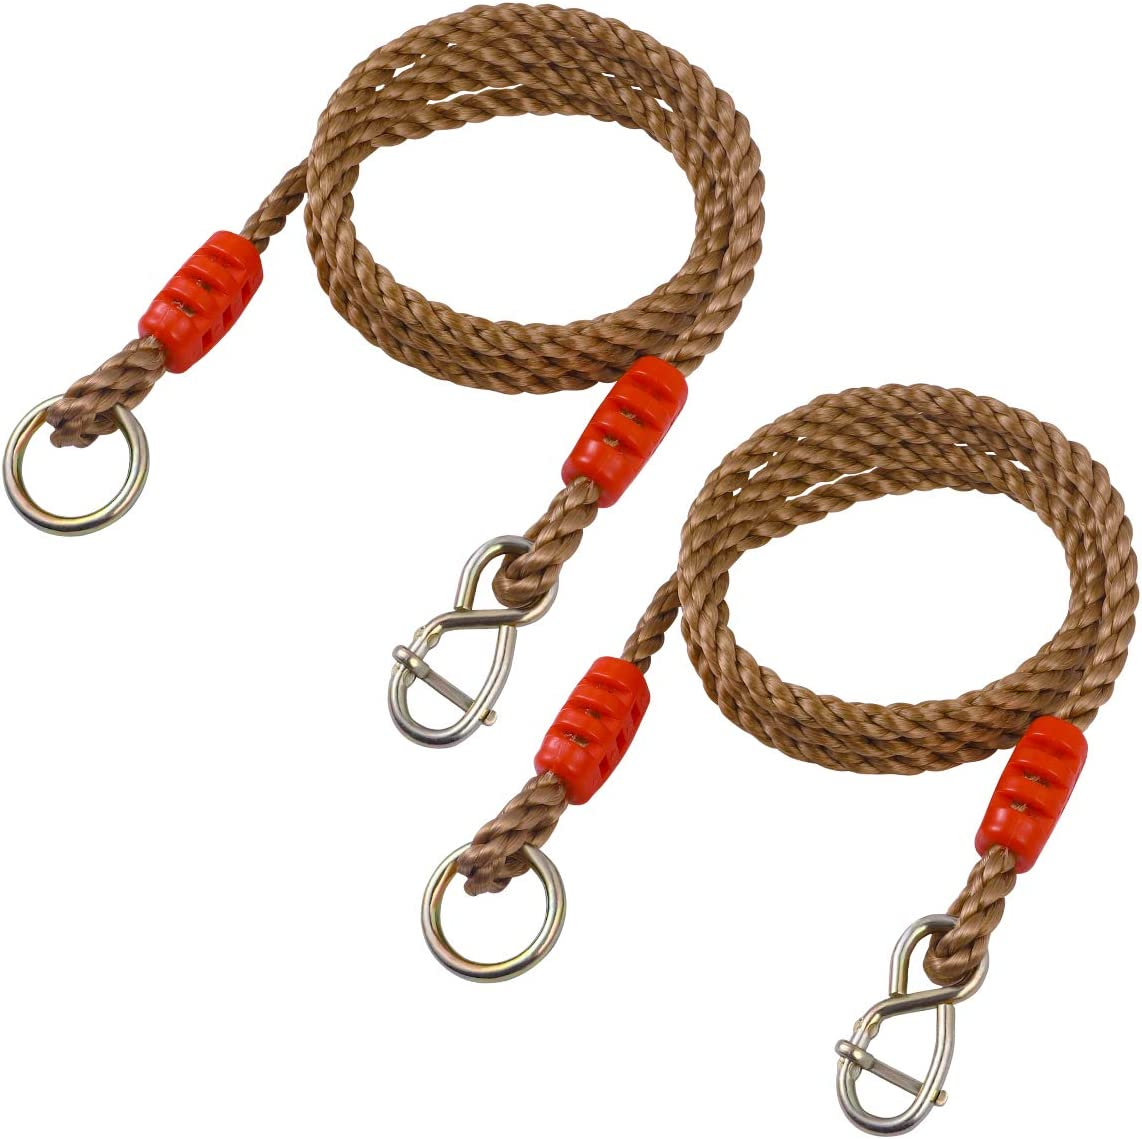 Yardwe Tree Swing Rope Heavy Duty Hammock Chair Straps Load Bearing 300kg 1 Pair 1 8m Garden Outdoor